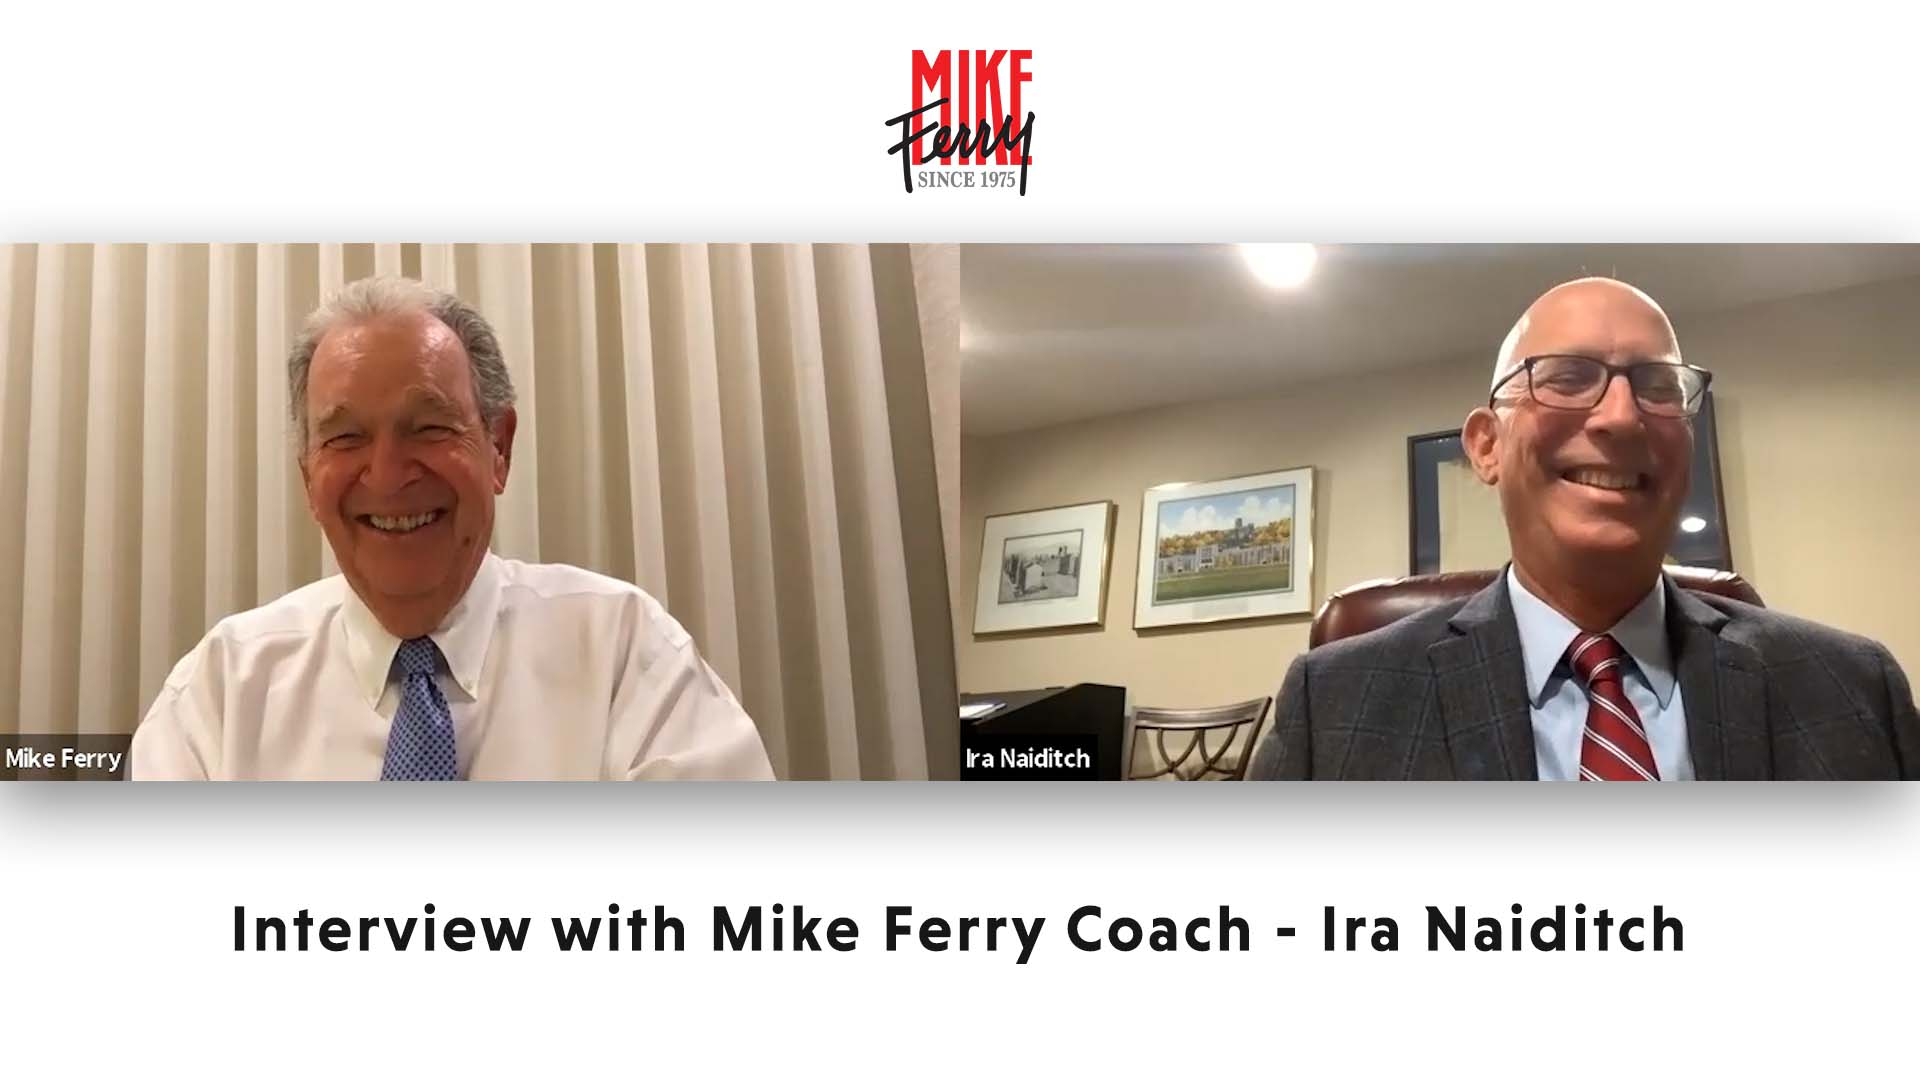 Interview with Mike Ferry Coach – Ira Naiditch